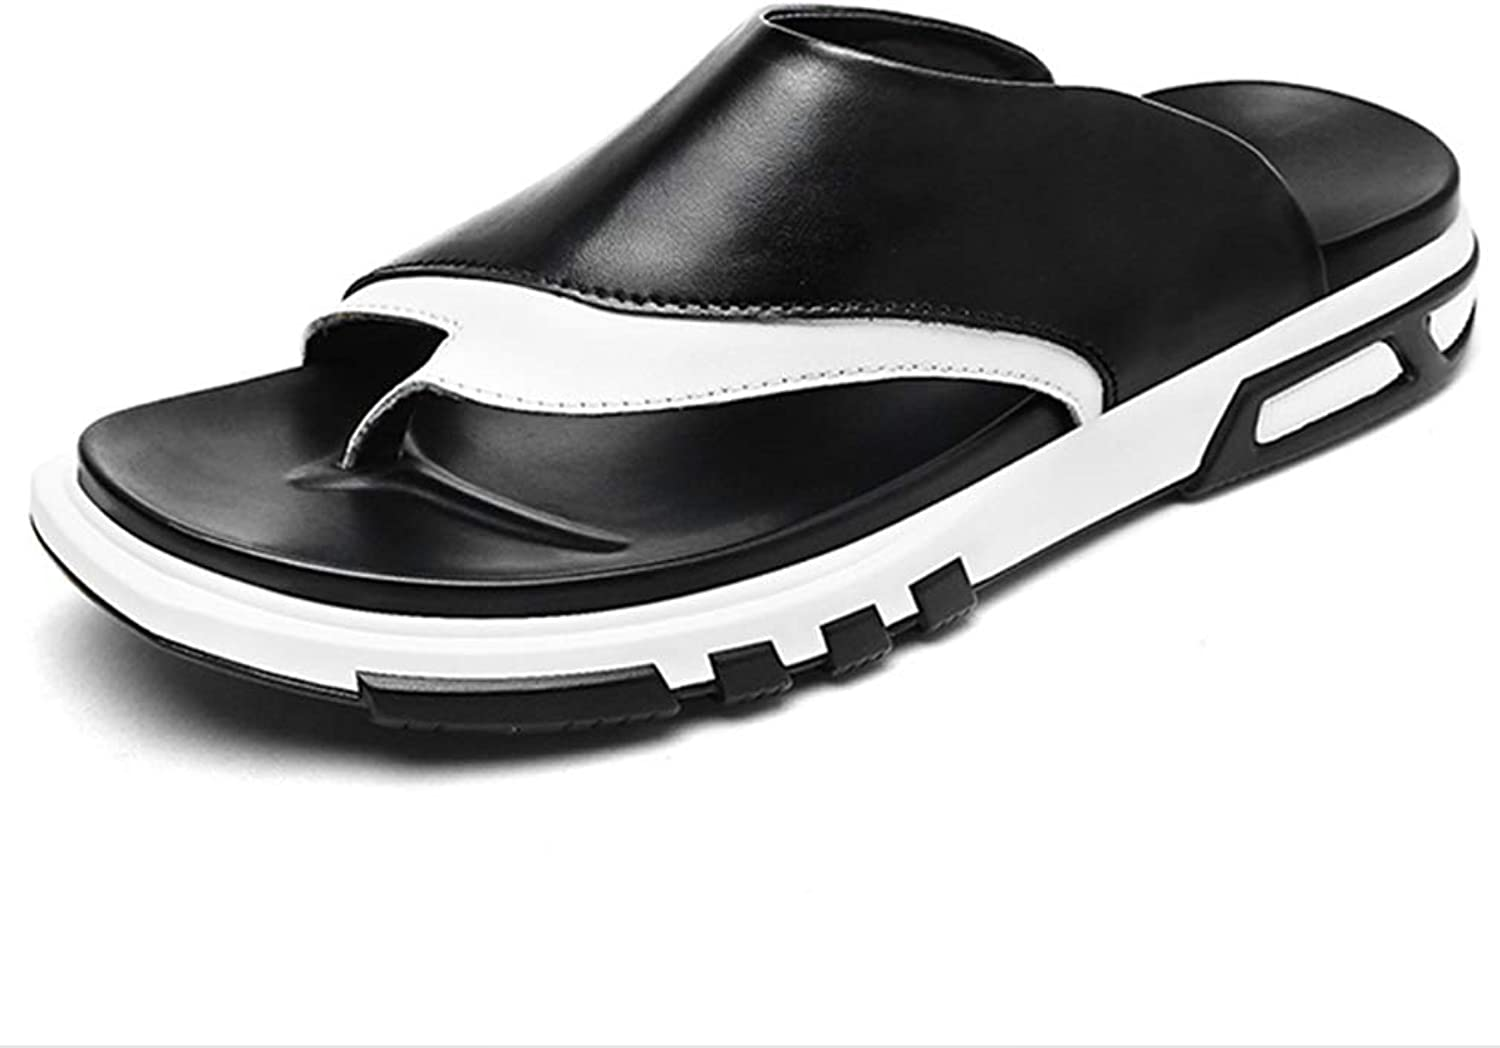 Men's Leather Herringbone Sandals and Slippers, Men's Flip-flops, Summer Casual Sandals, Outdoor Sports Sewing Fisherman's Breathable, Fashion England Beach Sandals And Slippers,Black,41